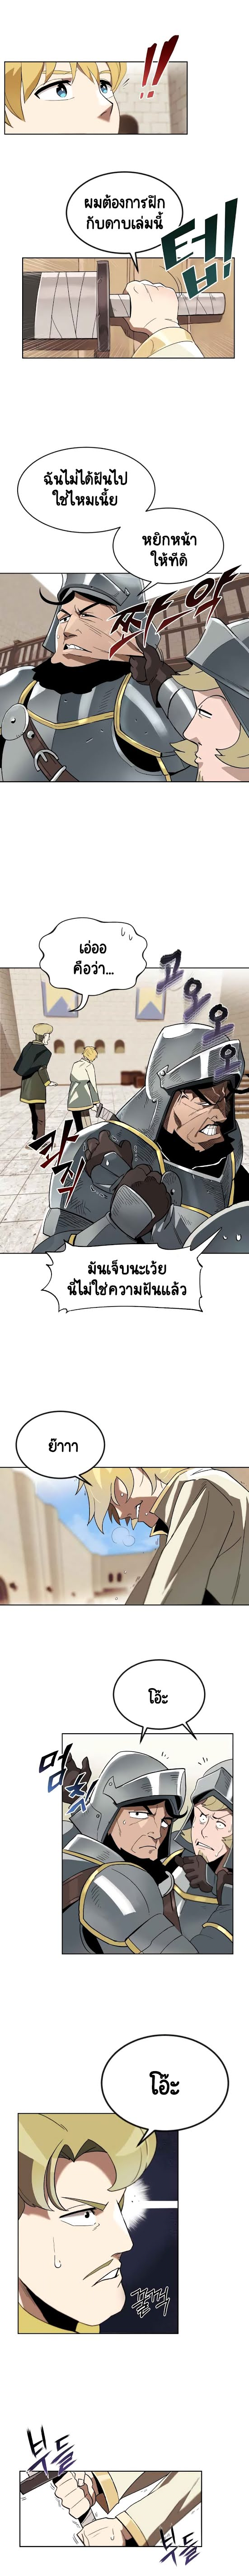 The Lazy Prince Becomes A Genius - หน้า 4